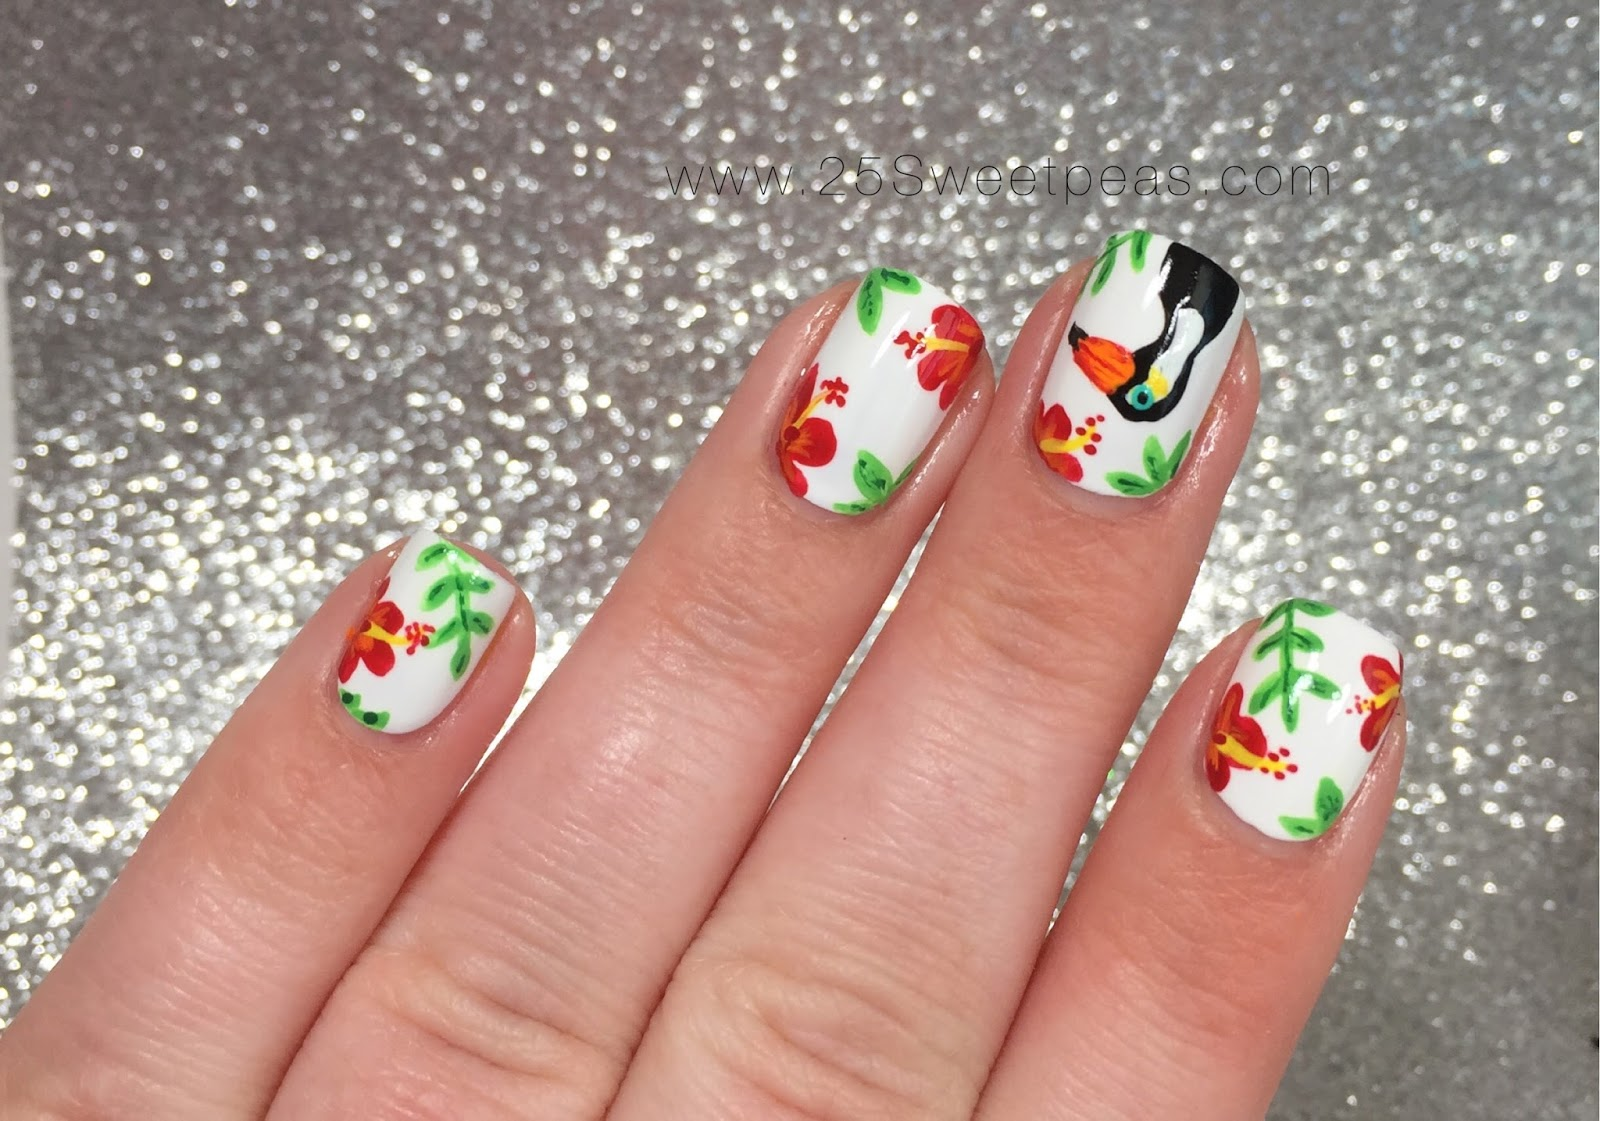 Tropical Toucan Nail Art - 25 Sweetpeas